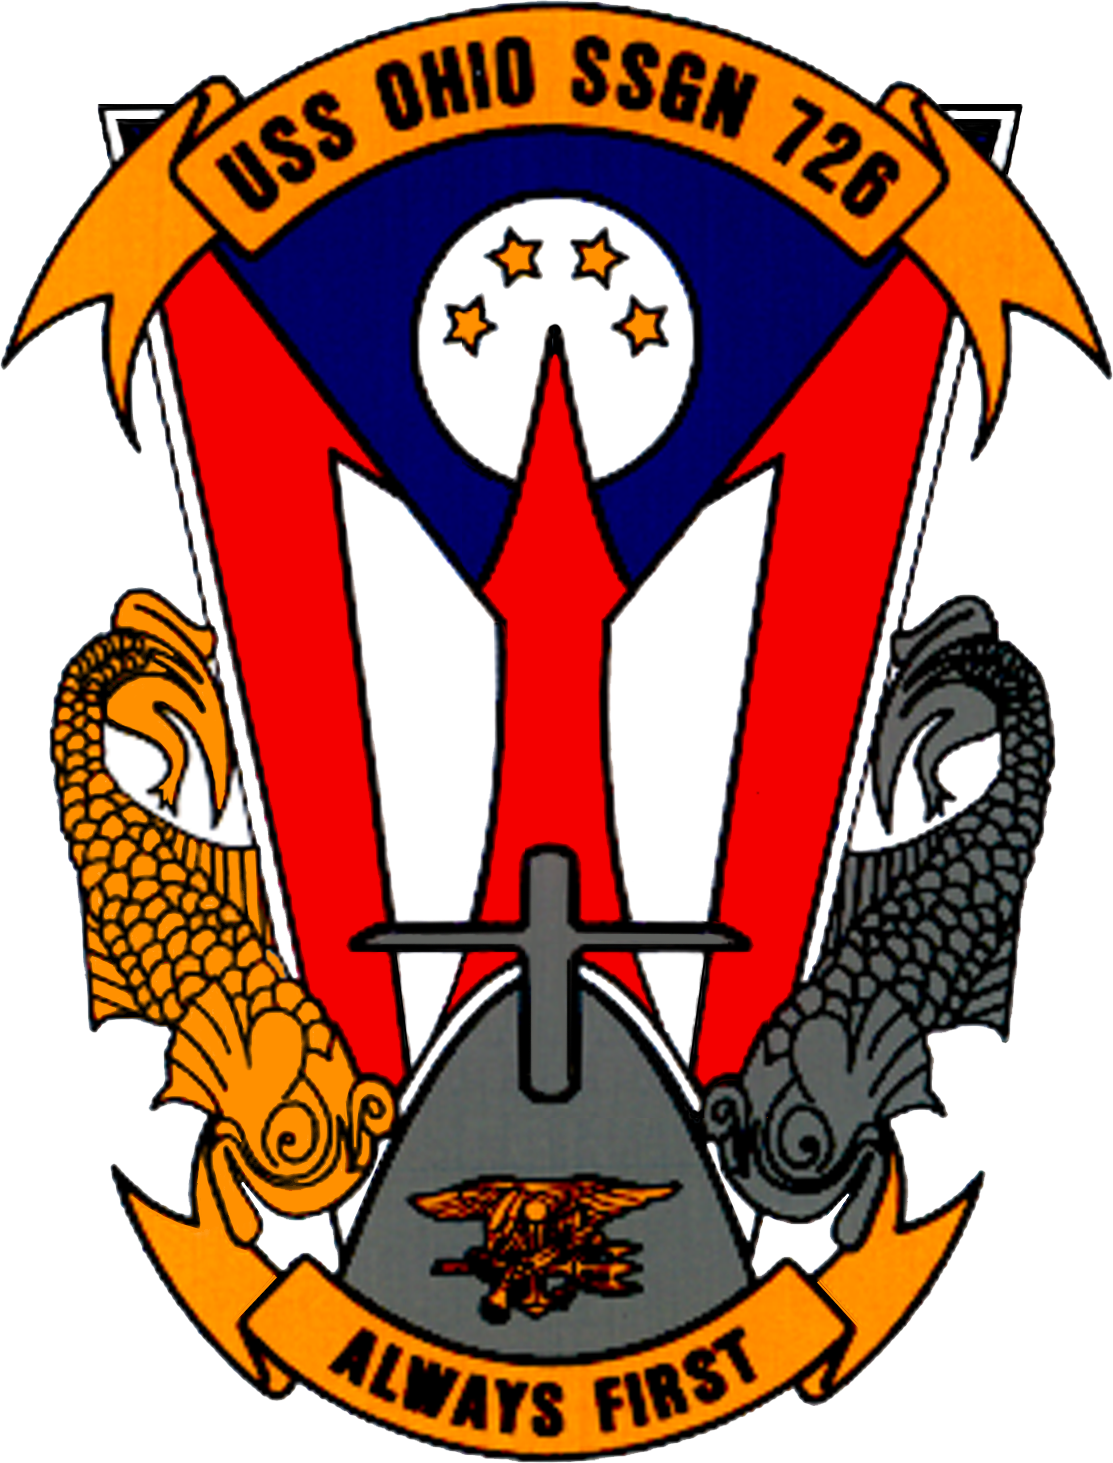 File:USS Ohio SSBN-726 Crest.png